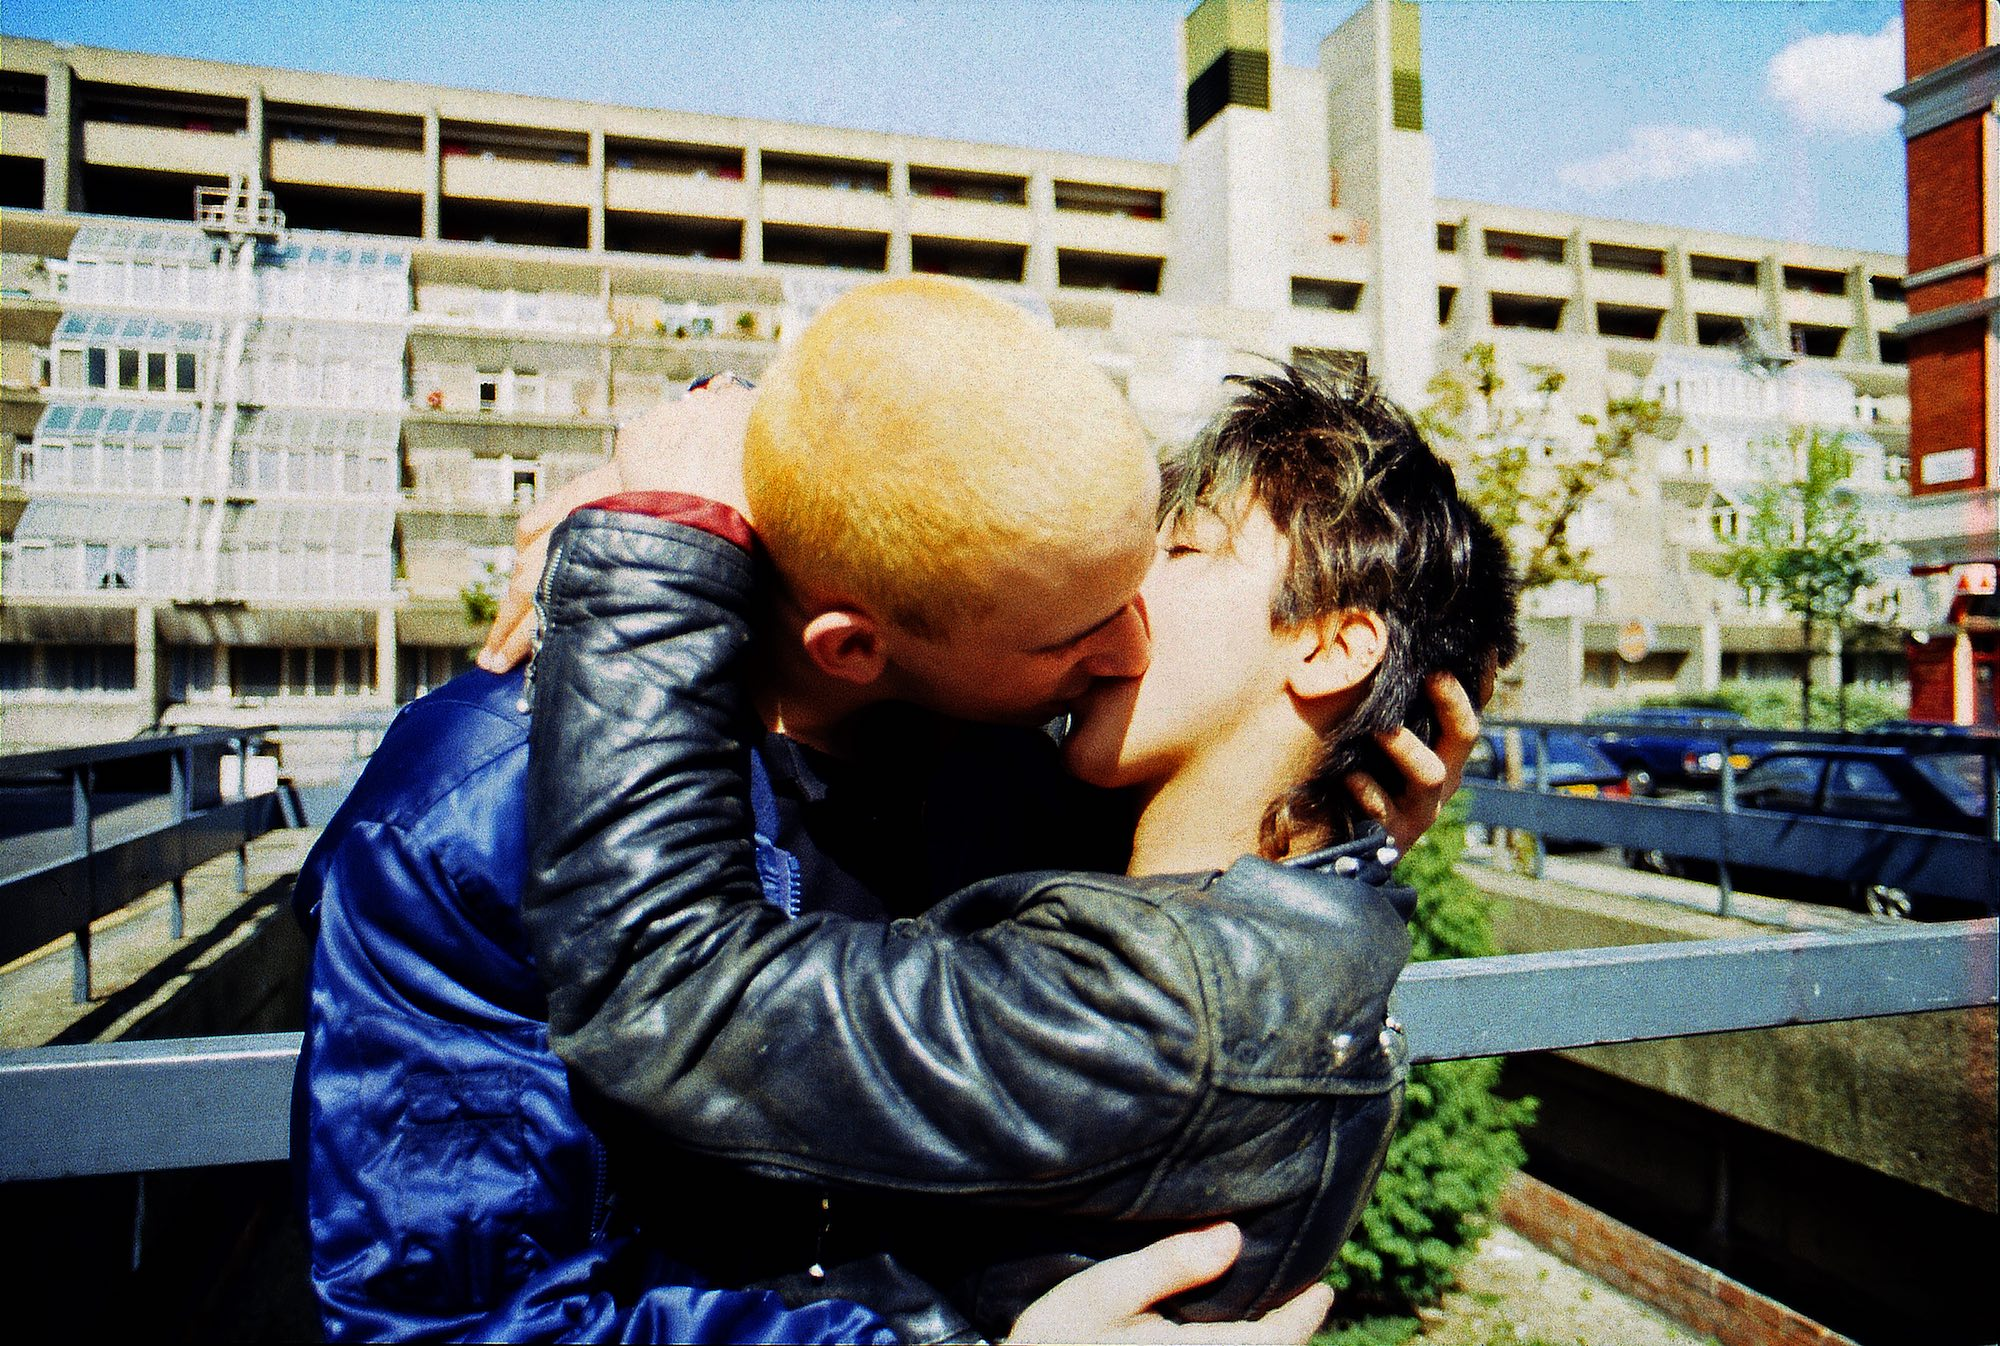 A portrait of British youth culture in the 1980s